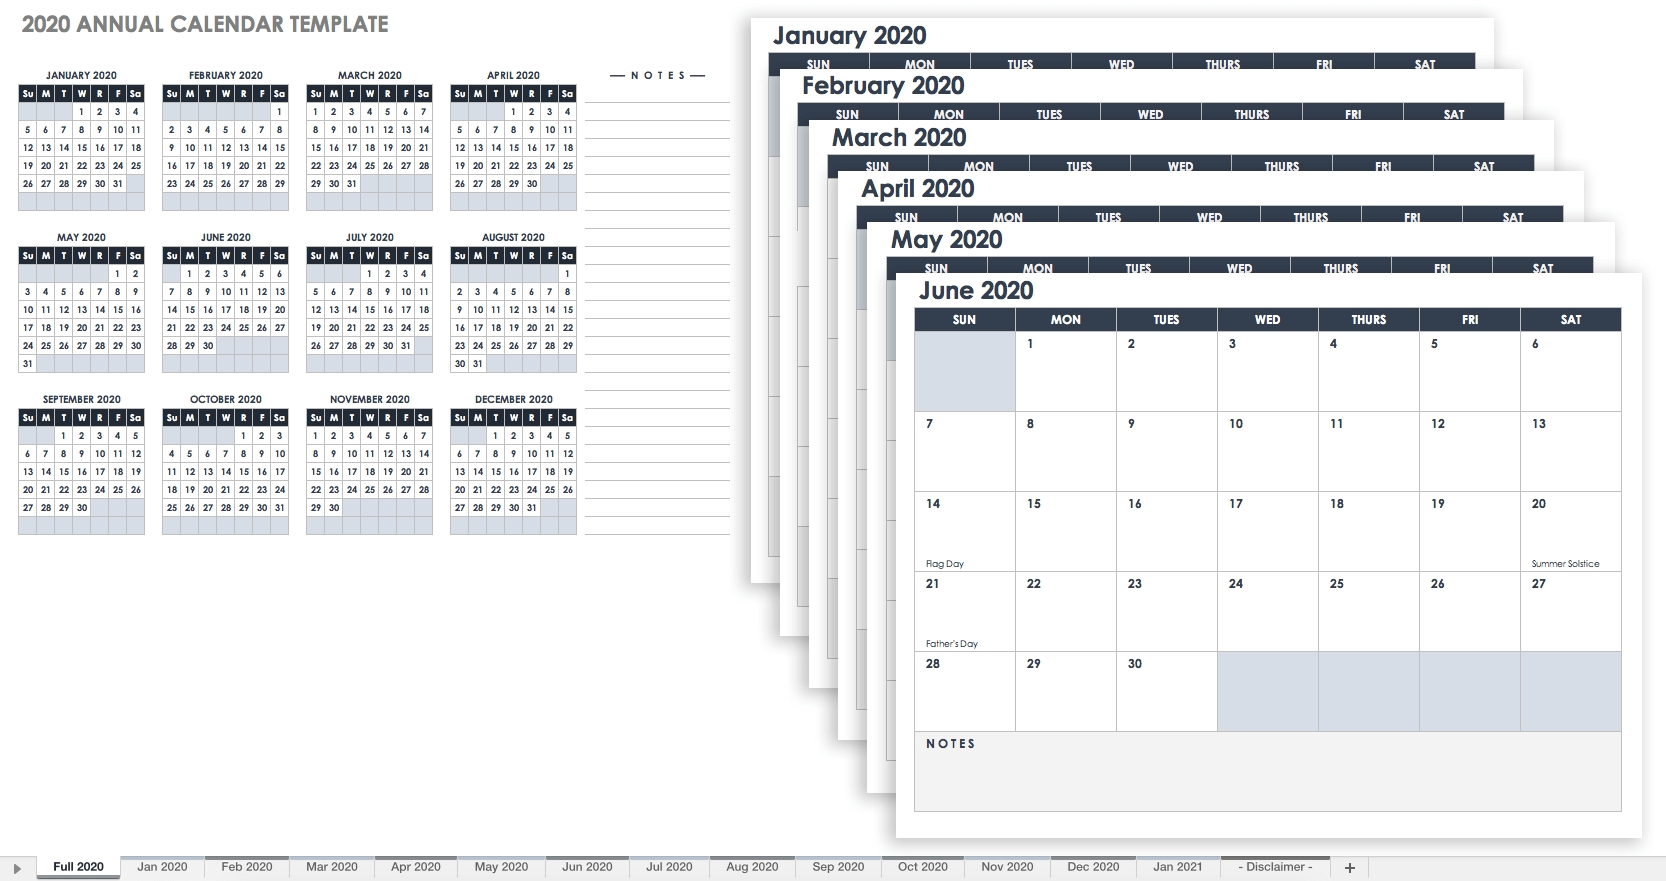 Free Blank Calendar Templates - Smartsheet in Monday Thru Friday Calendar 2020 Template